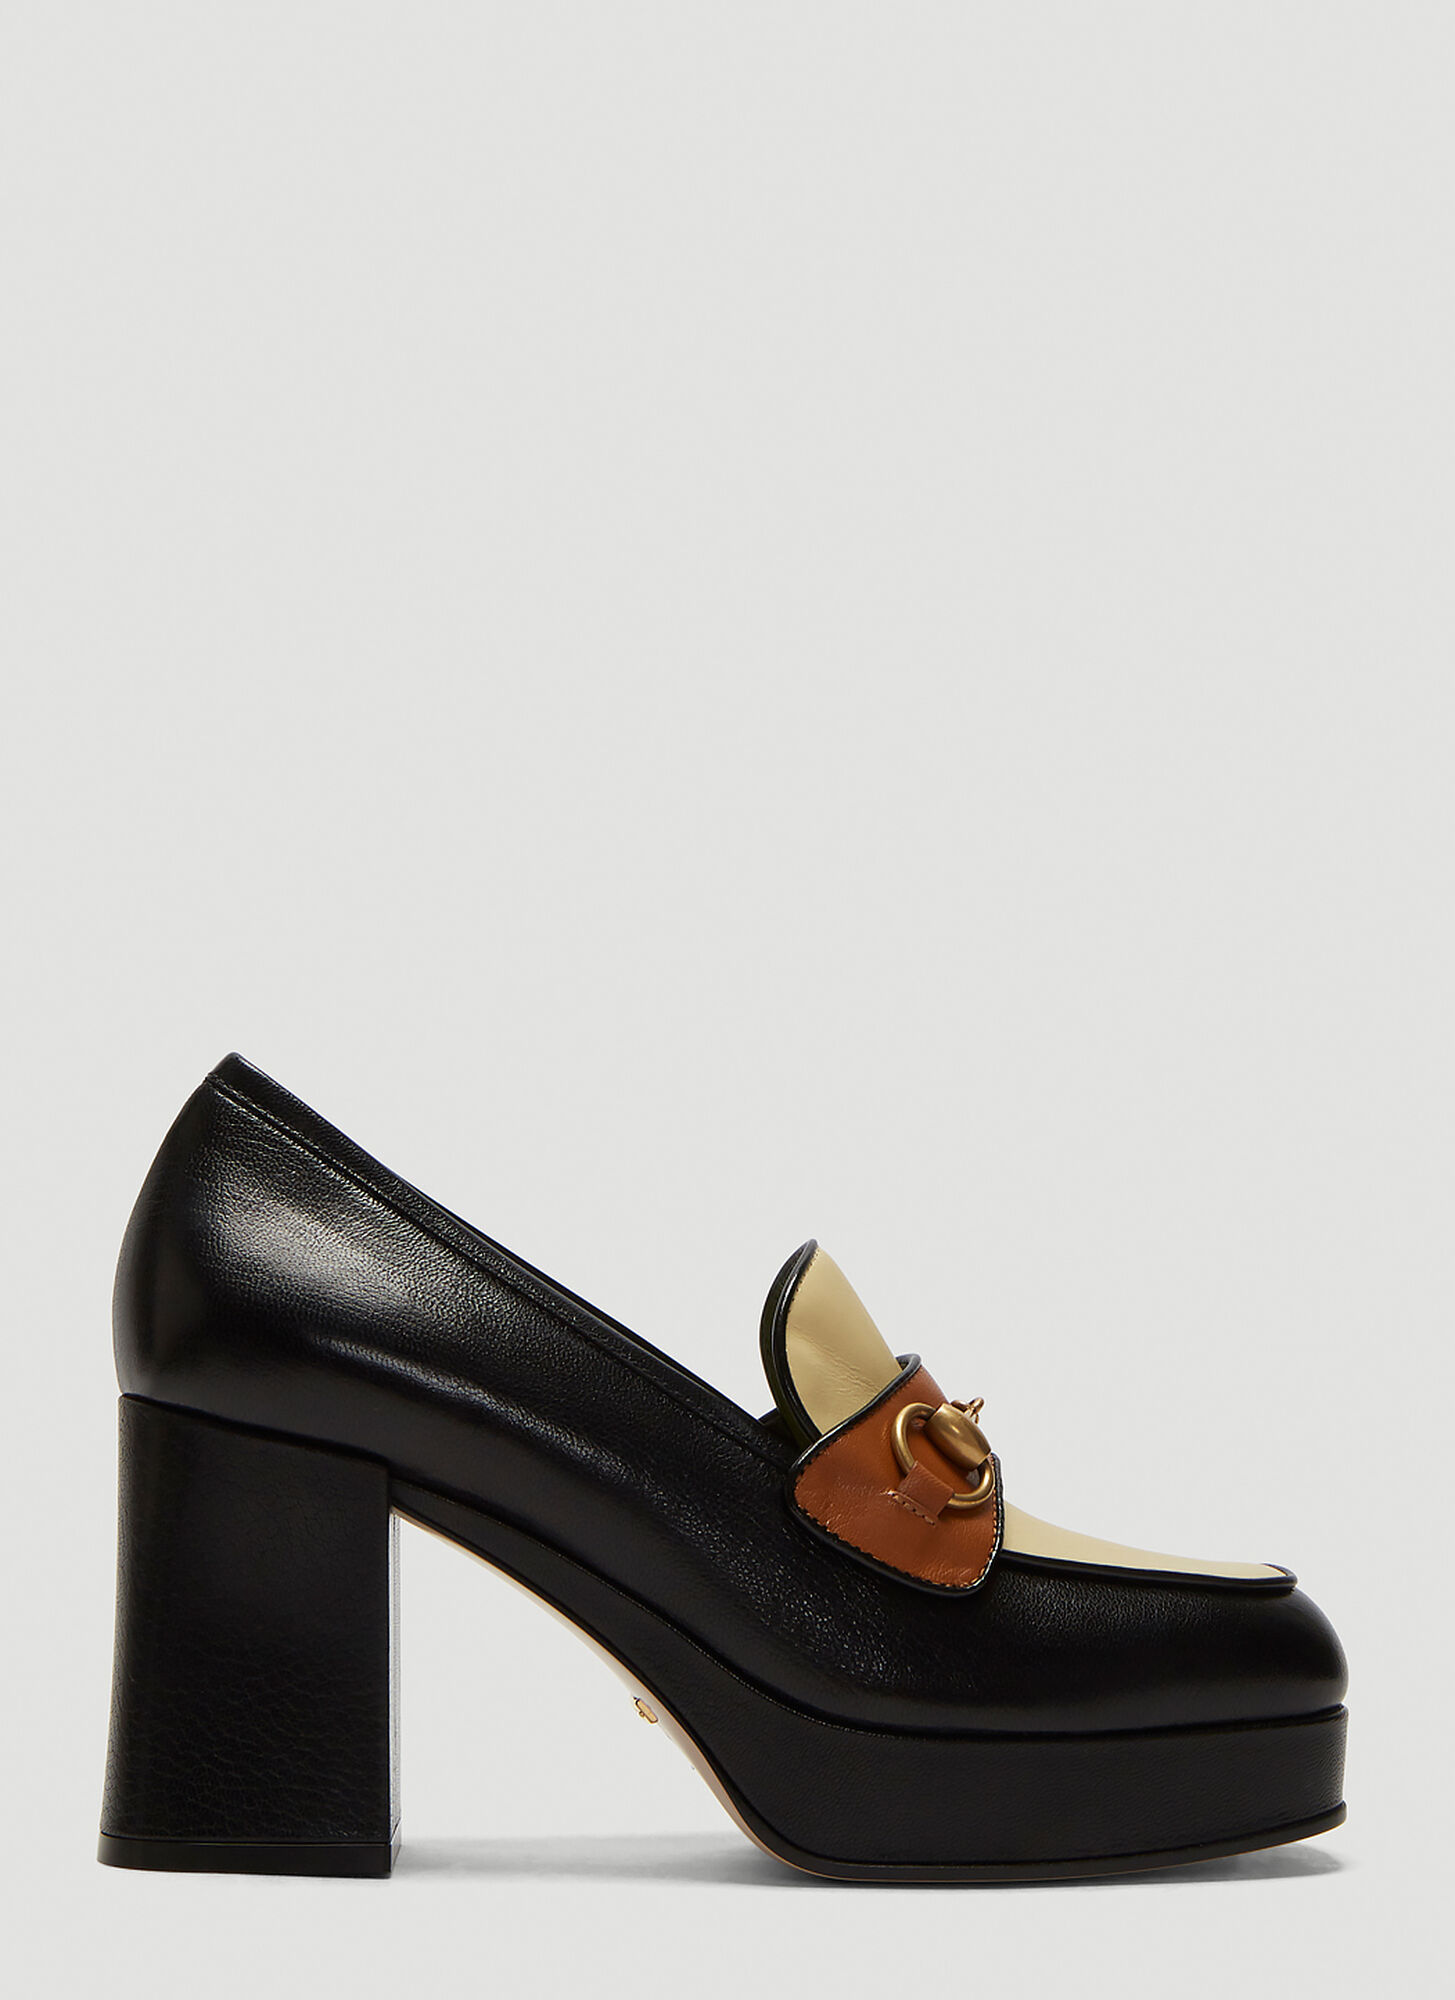 Gucci Horsebit High-Heel Loafers in Black